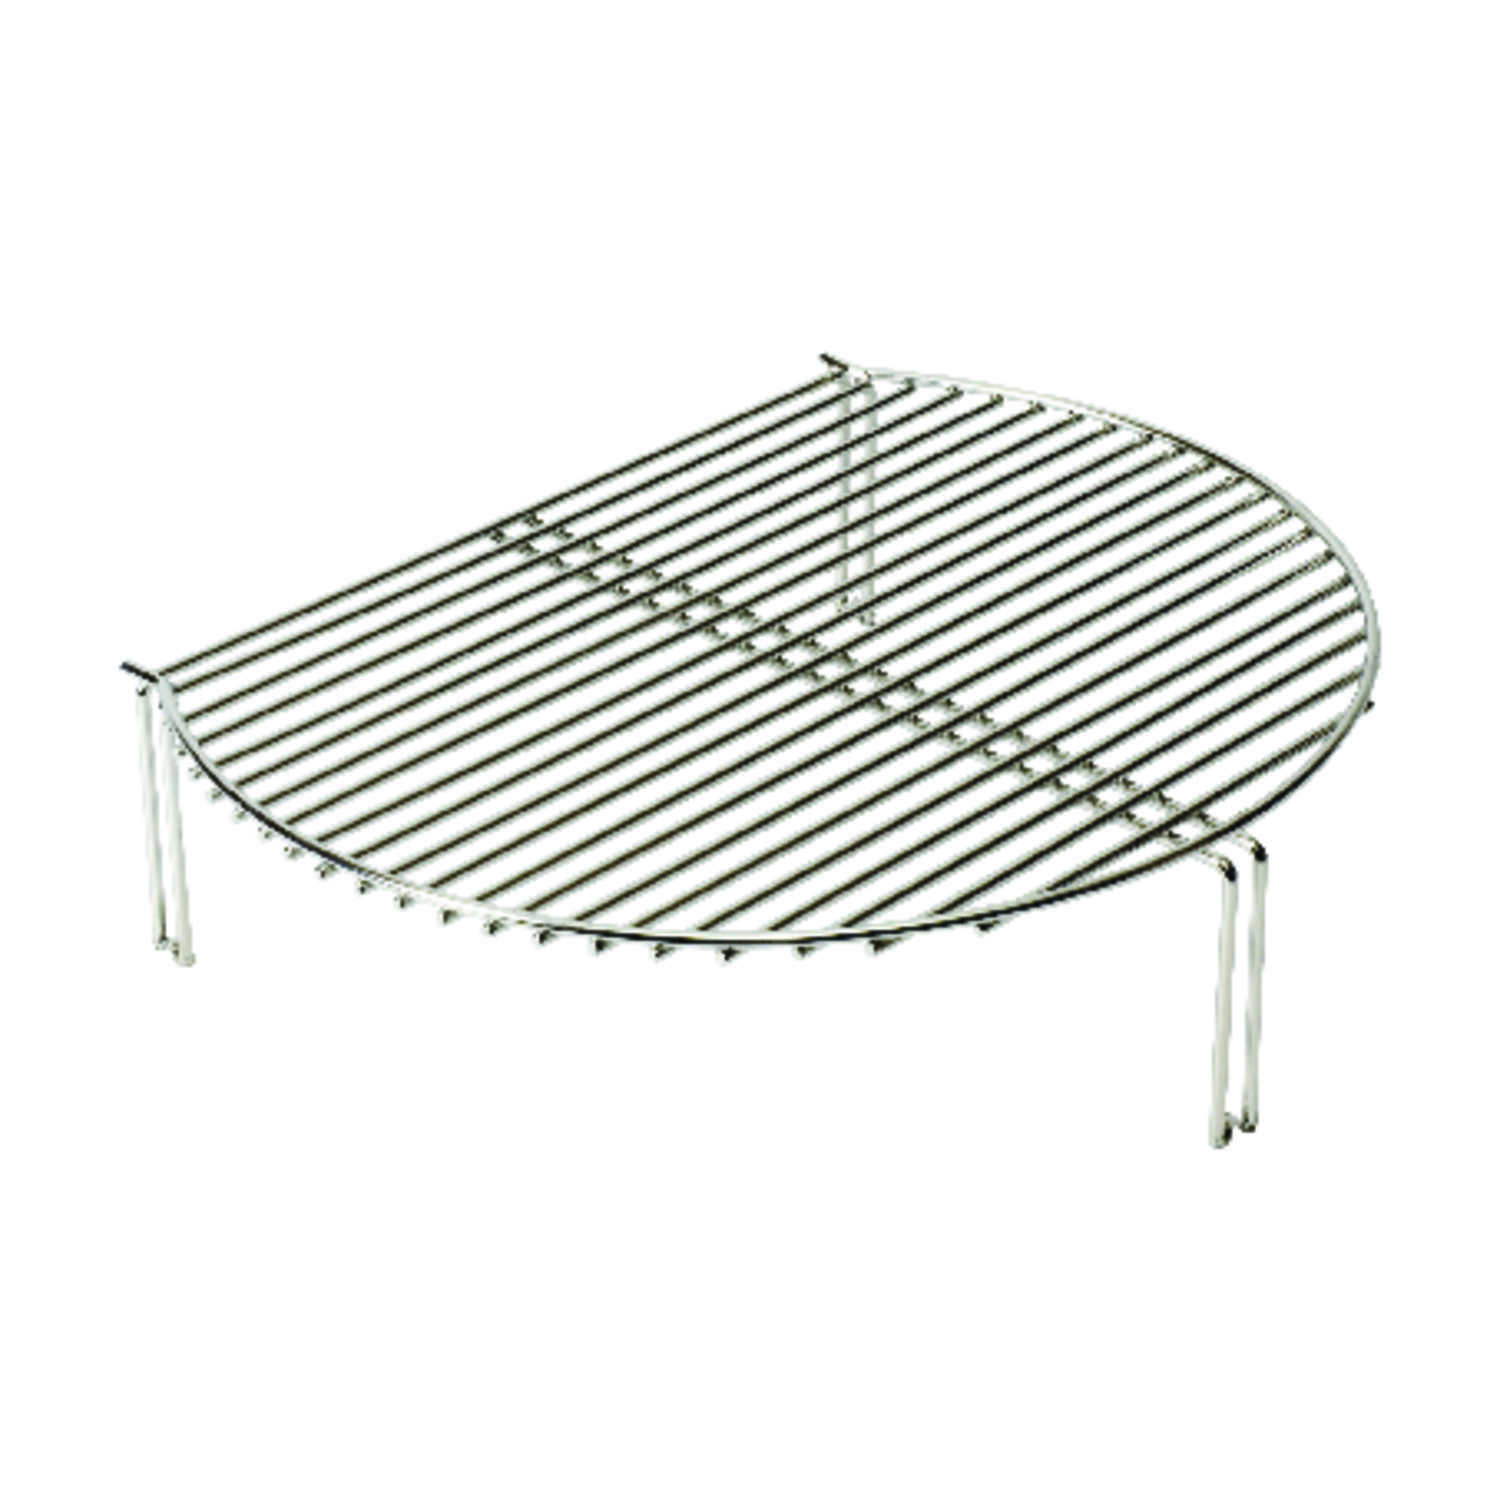 Kamado Joe  Big Joe  Steel  Grill Expander  4 in. H